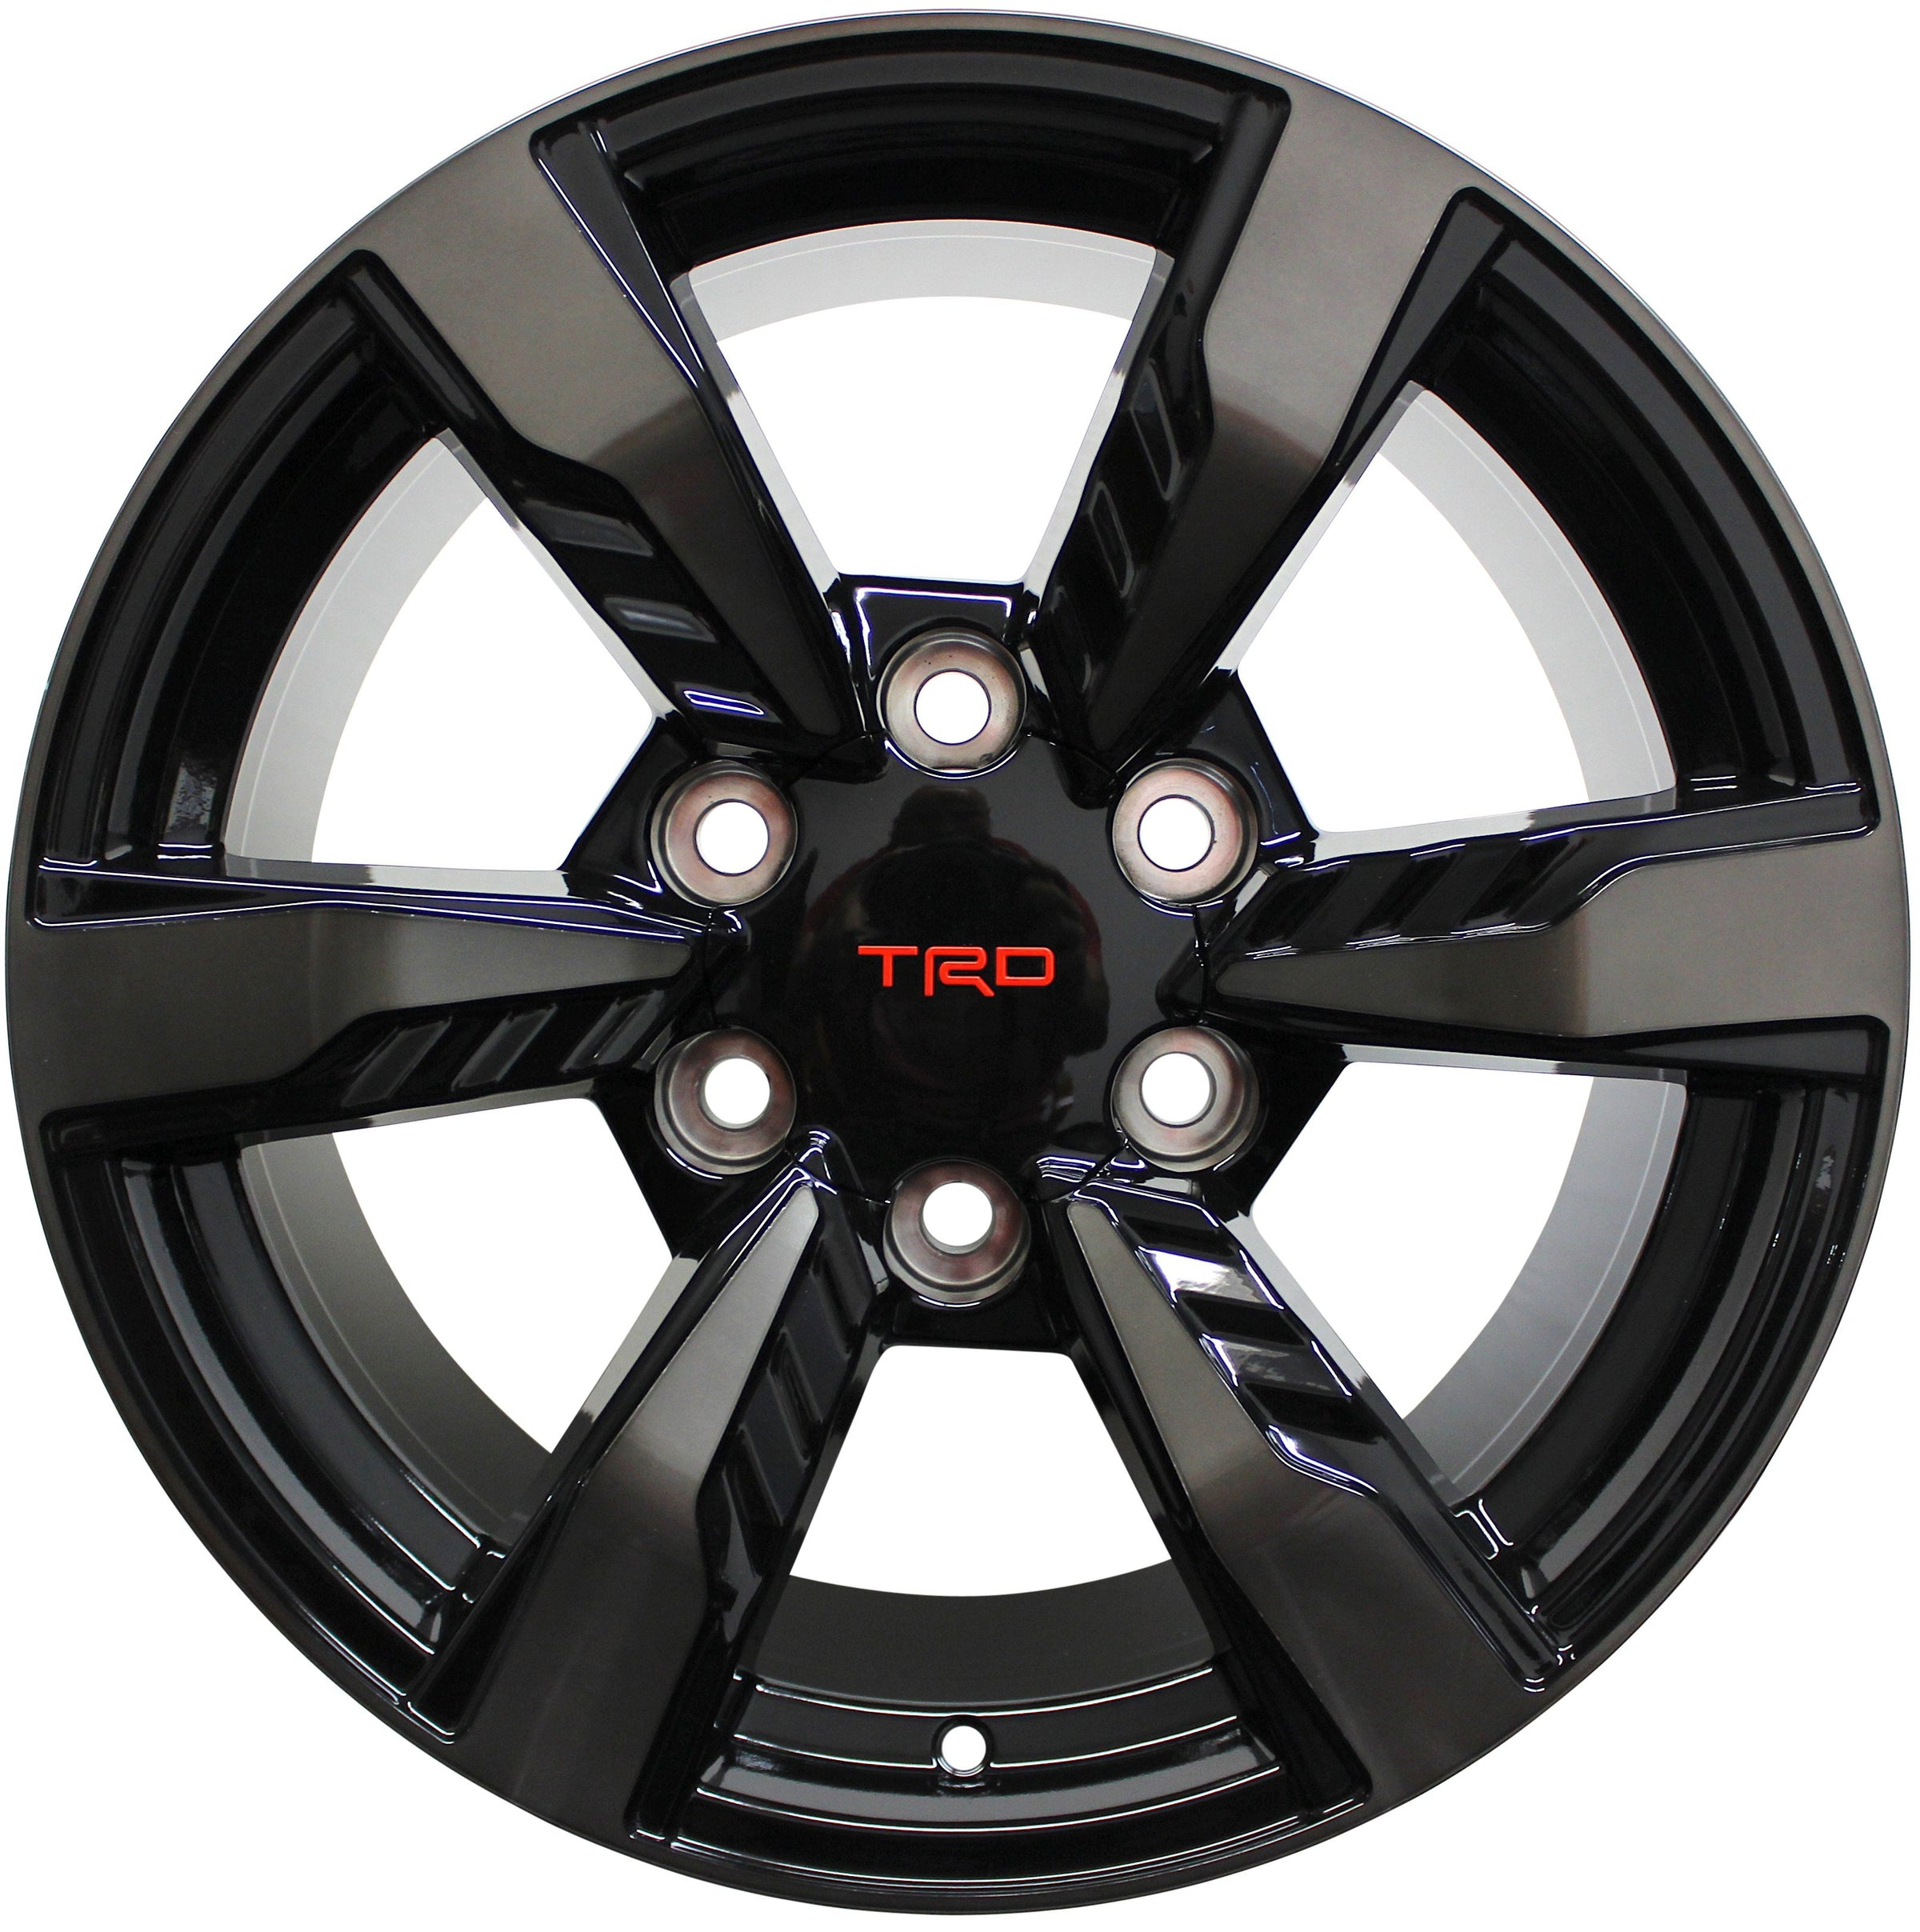 20 Inch Toyota Trd Style Rims Fits 4runner Fj Cruiser Tacoma Wheels Concept Wheels